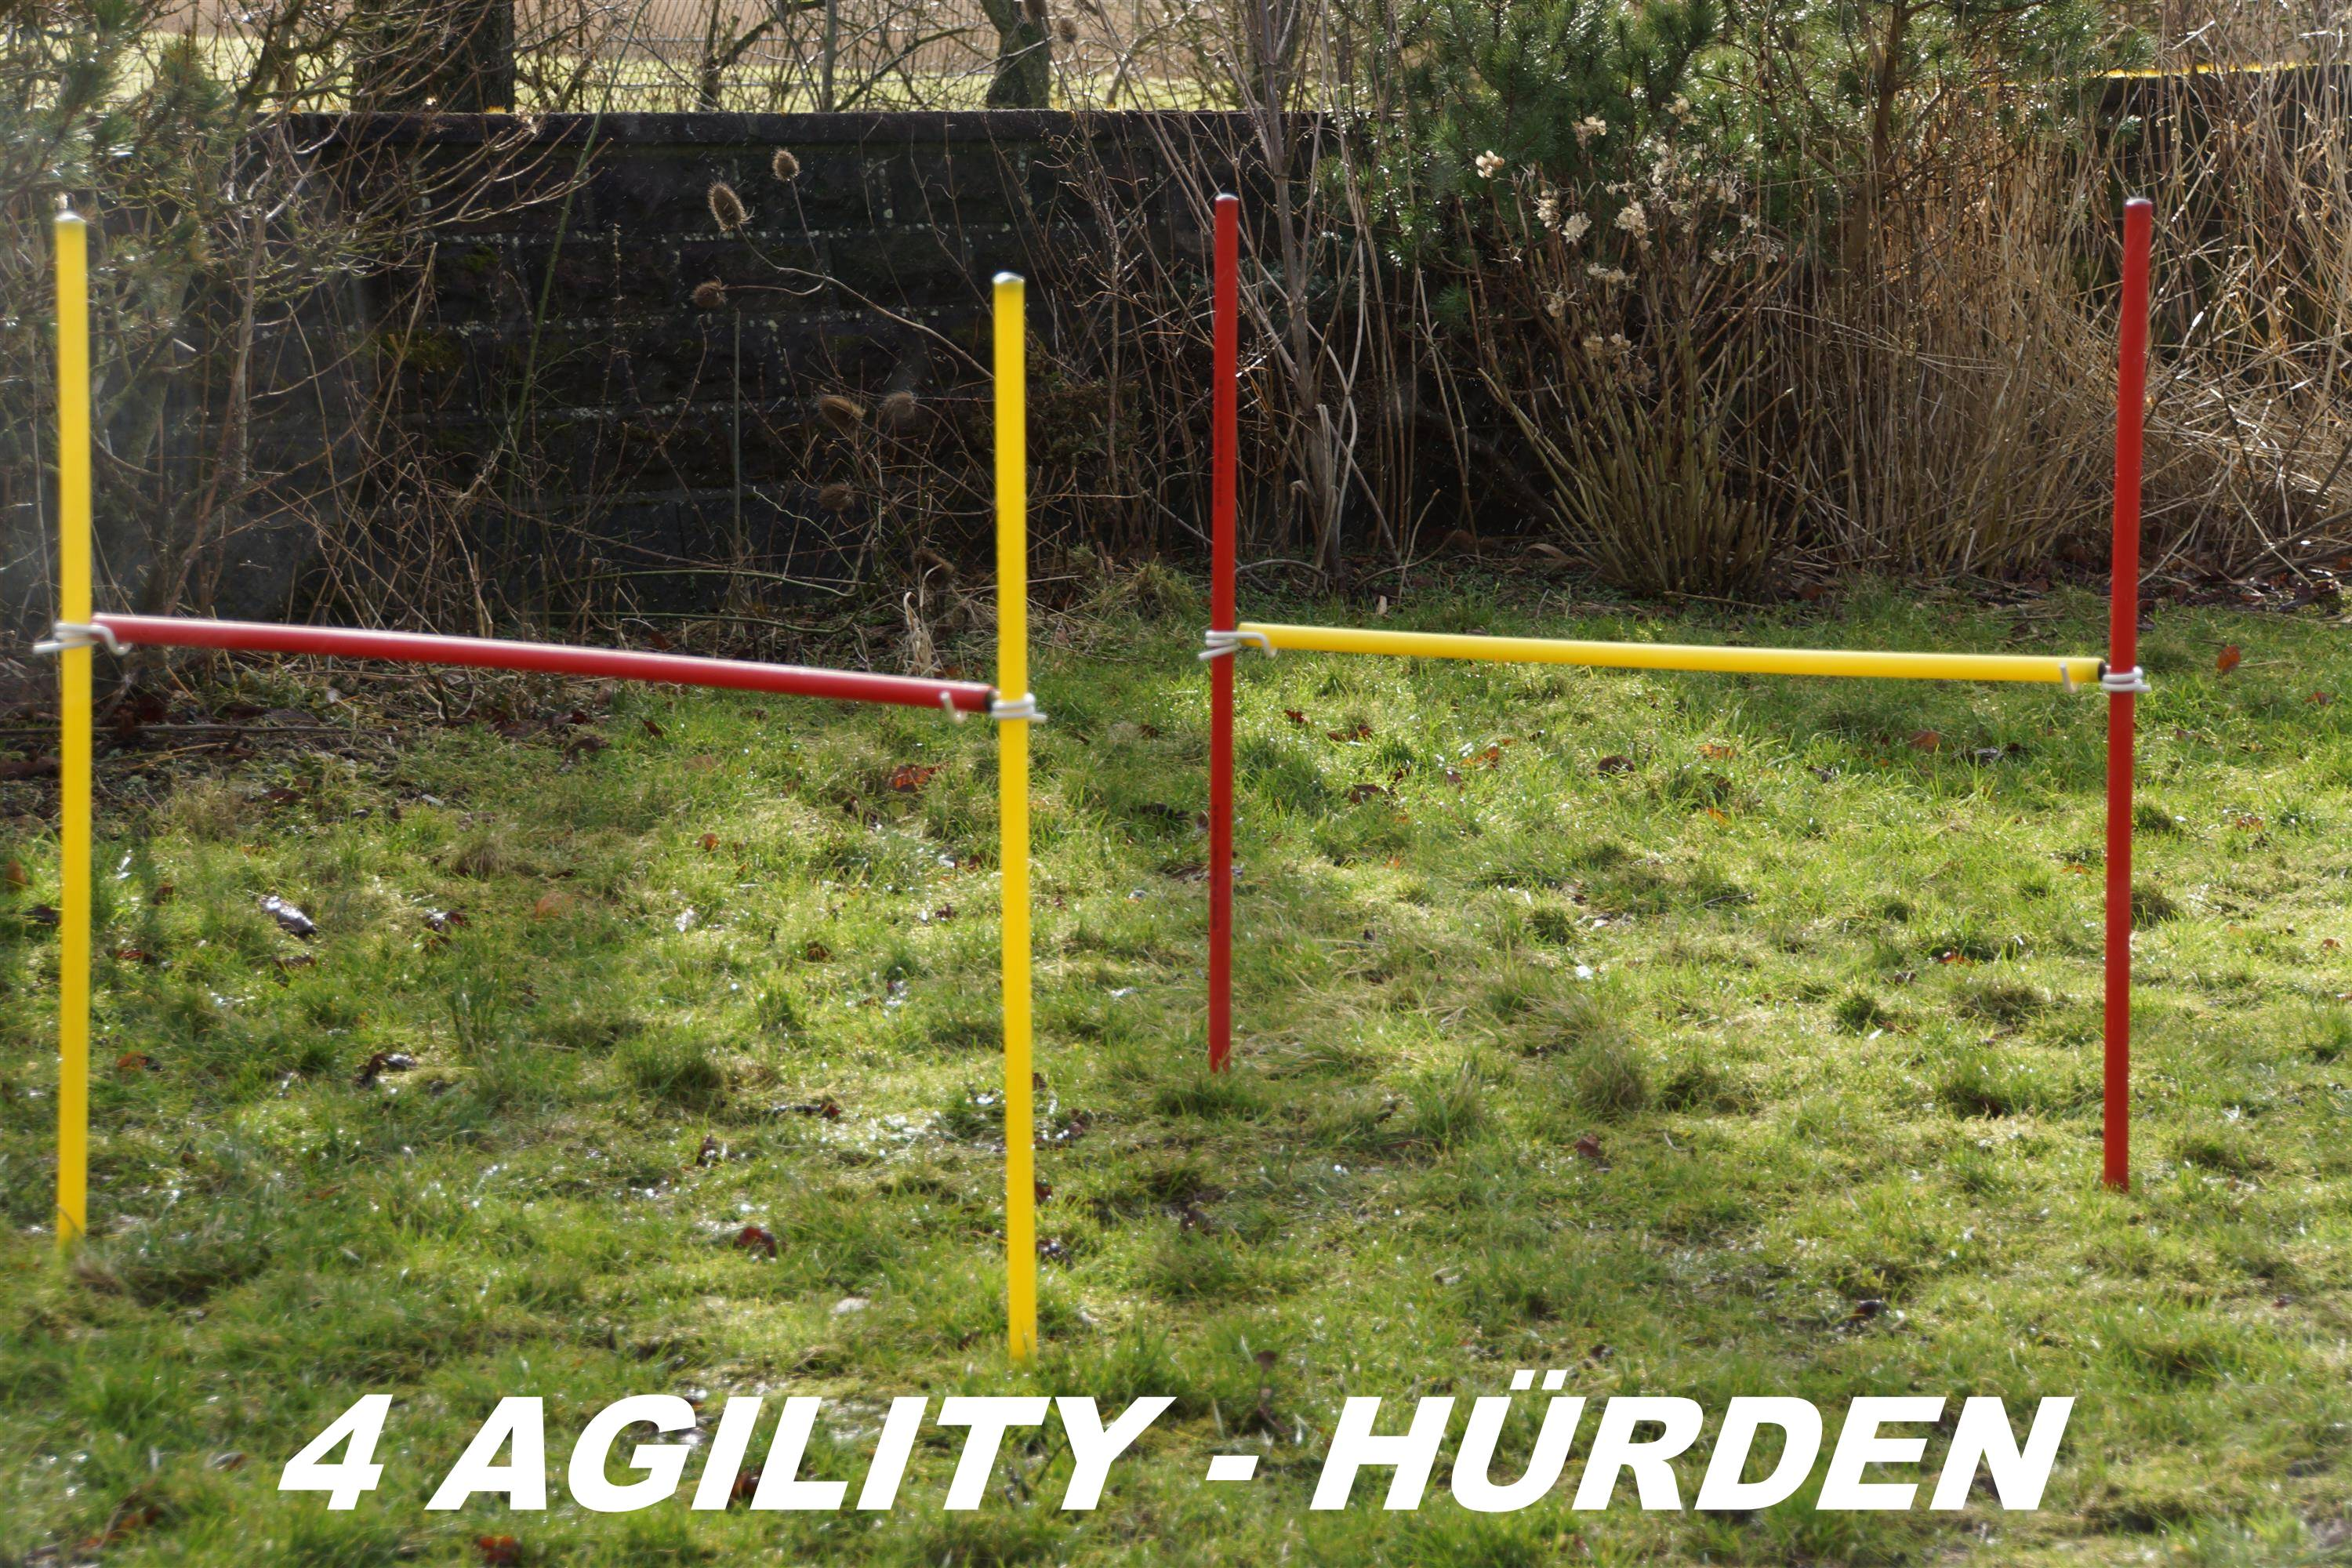 4 X AGILITY-ÜBUNGS-HÜRDEN-SET IN ROT/GELB